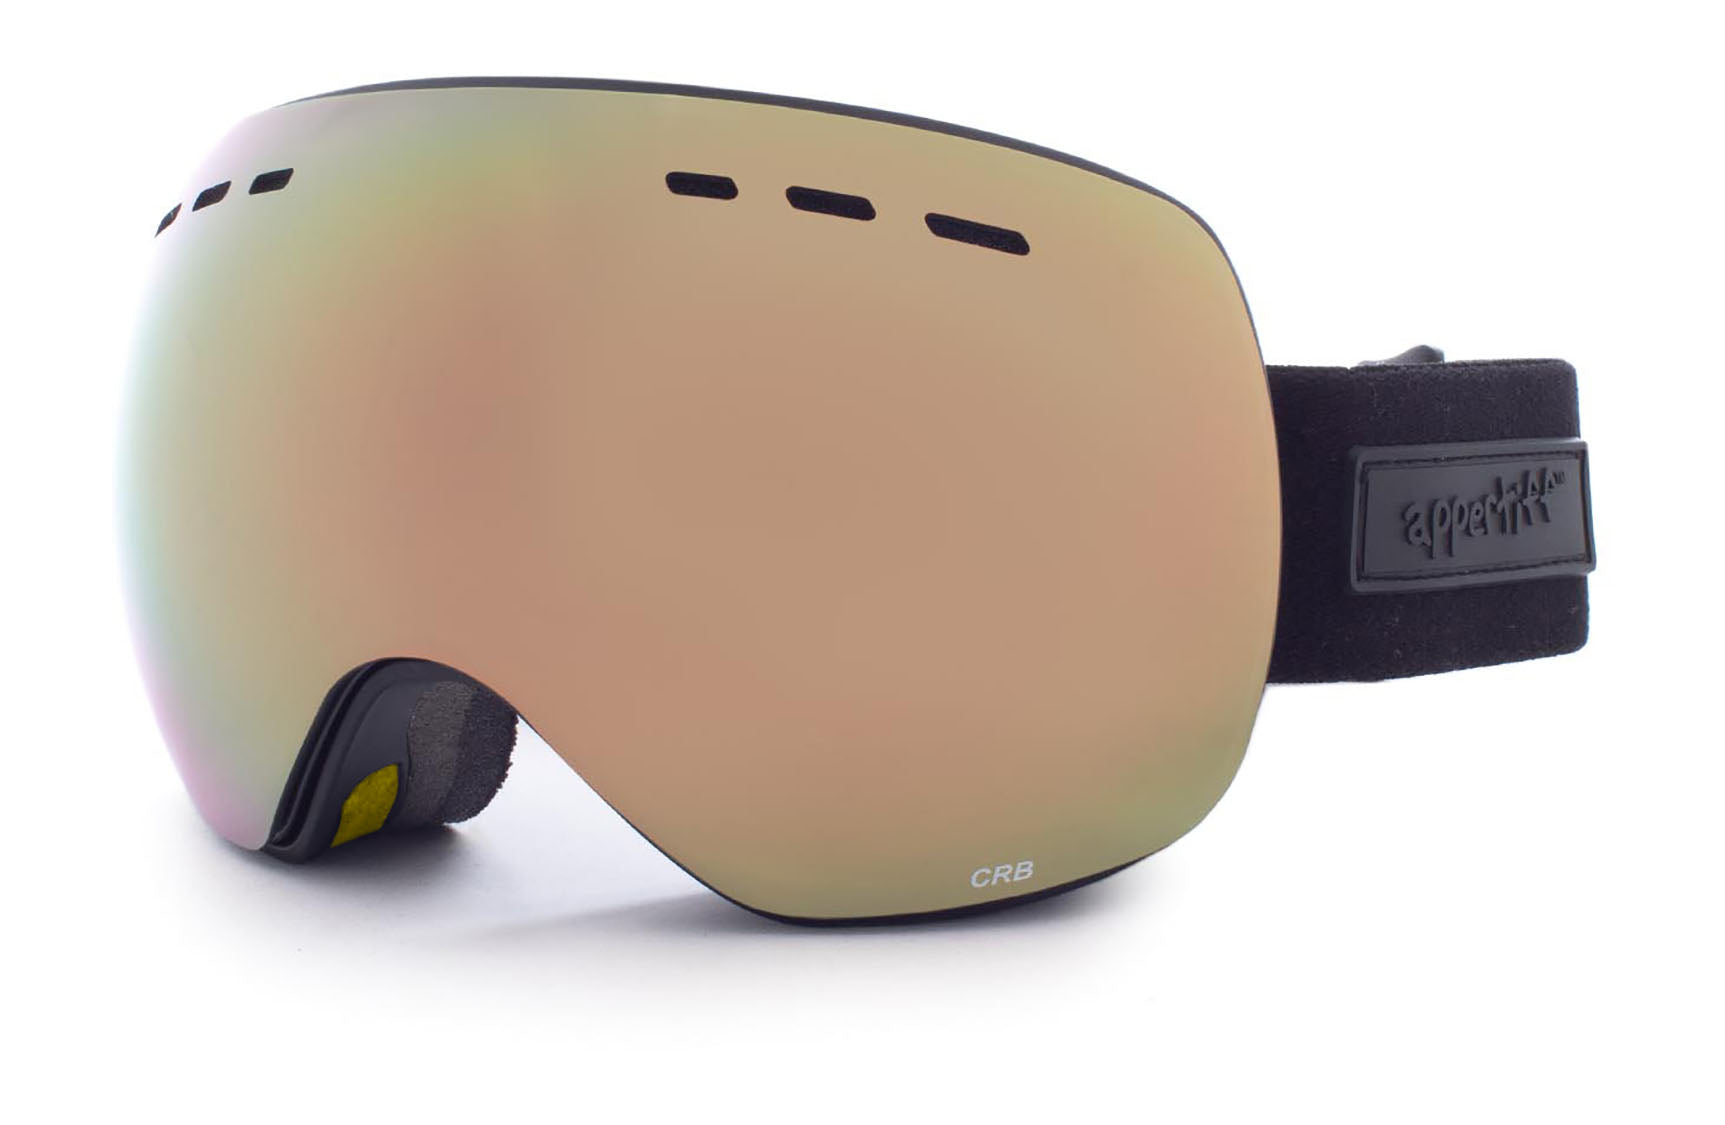 Appertiff CRB Goggles thumbnail